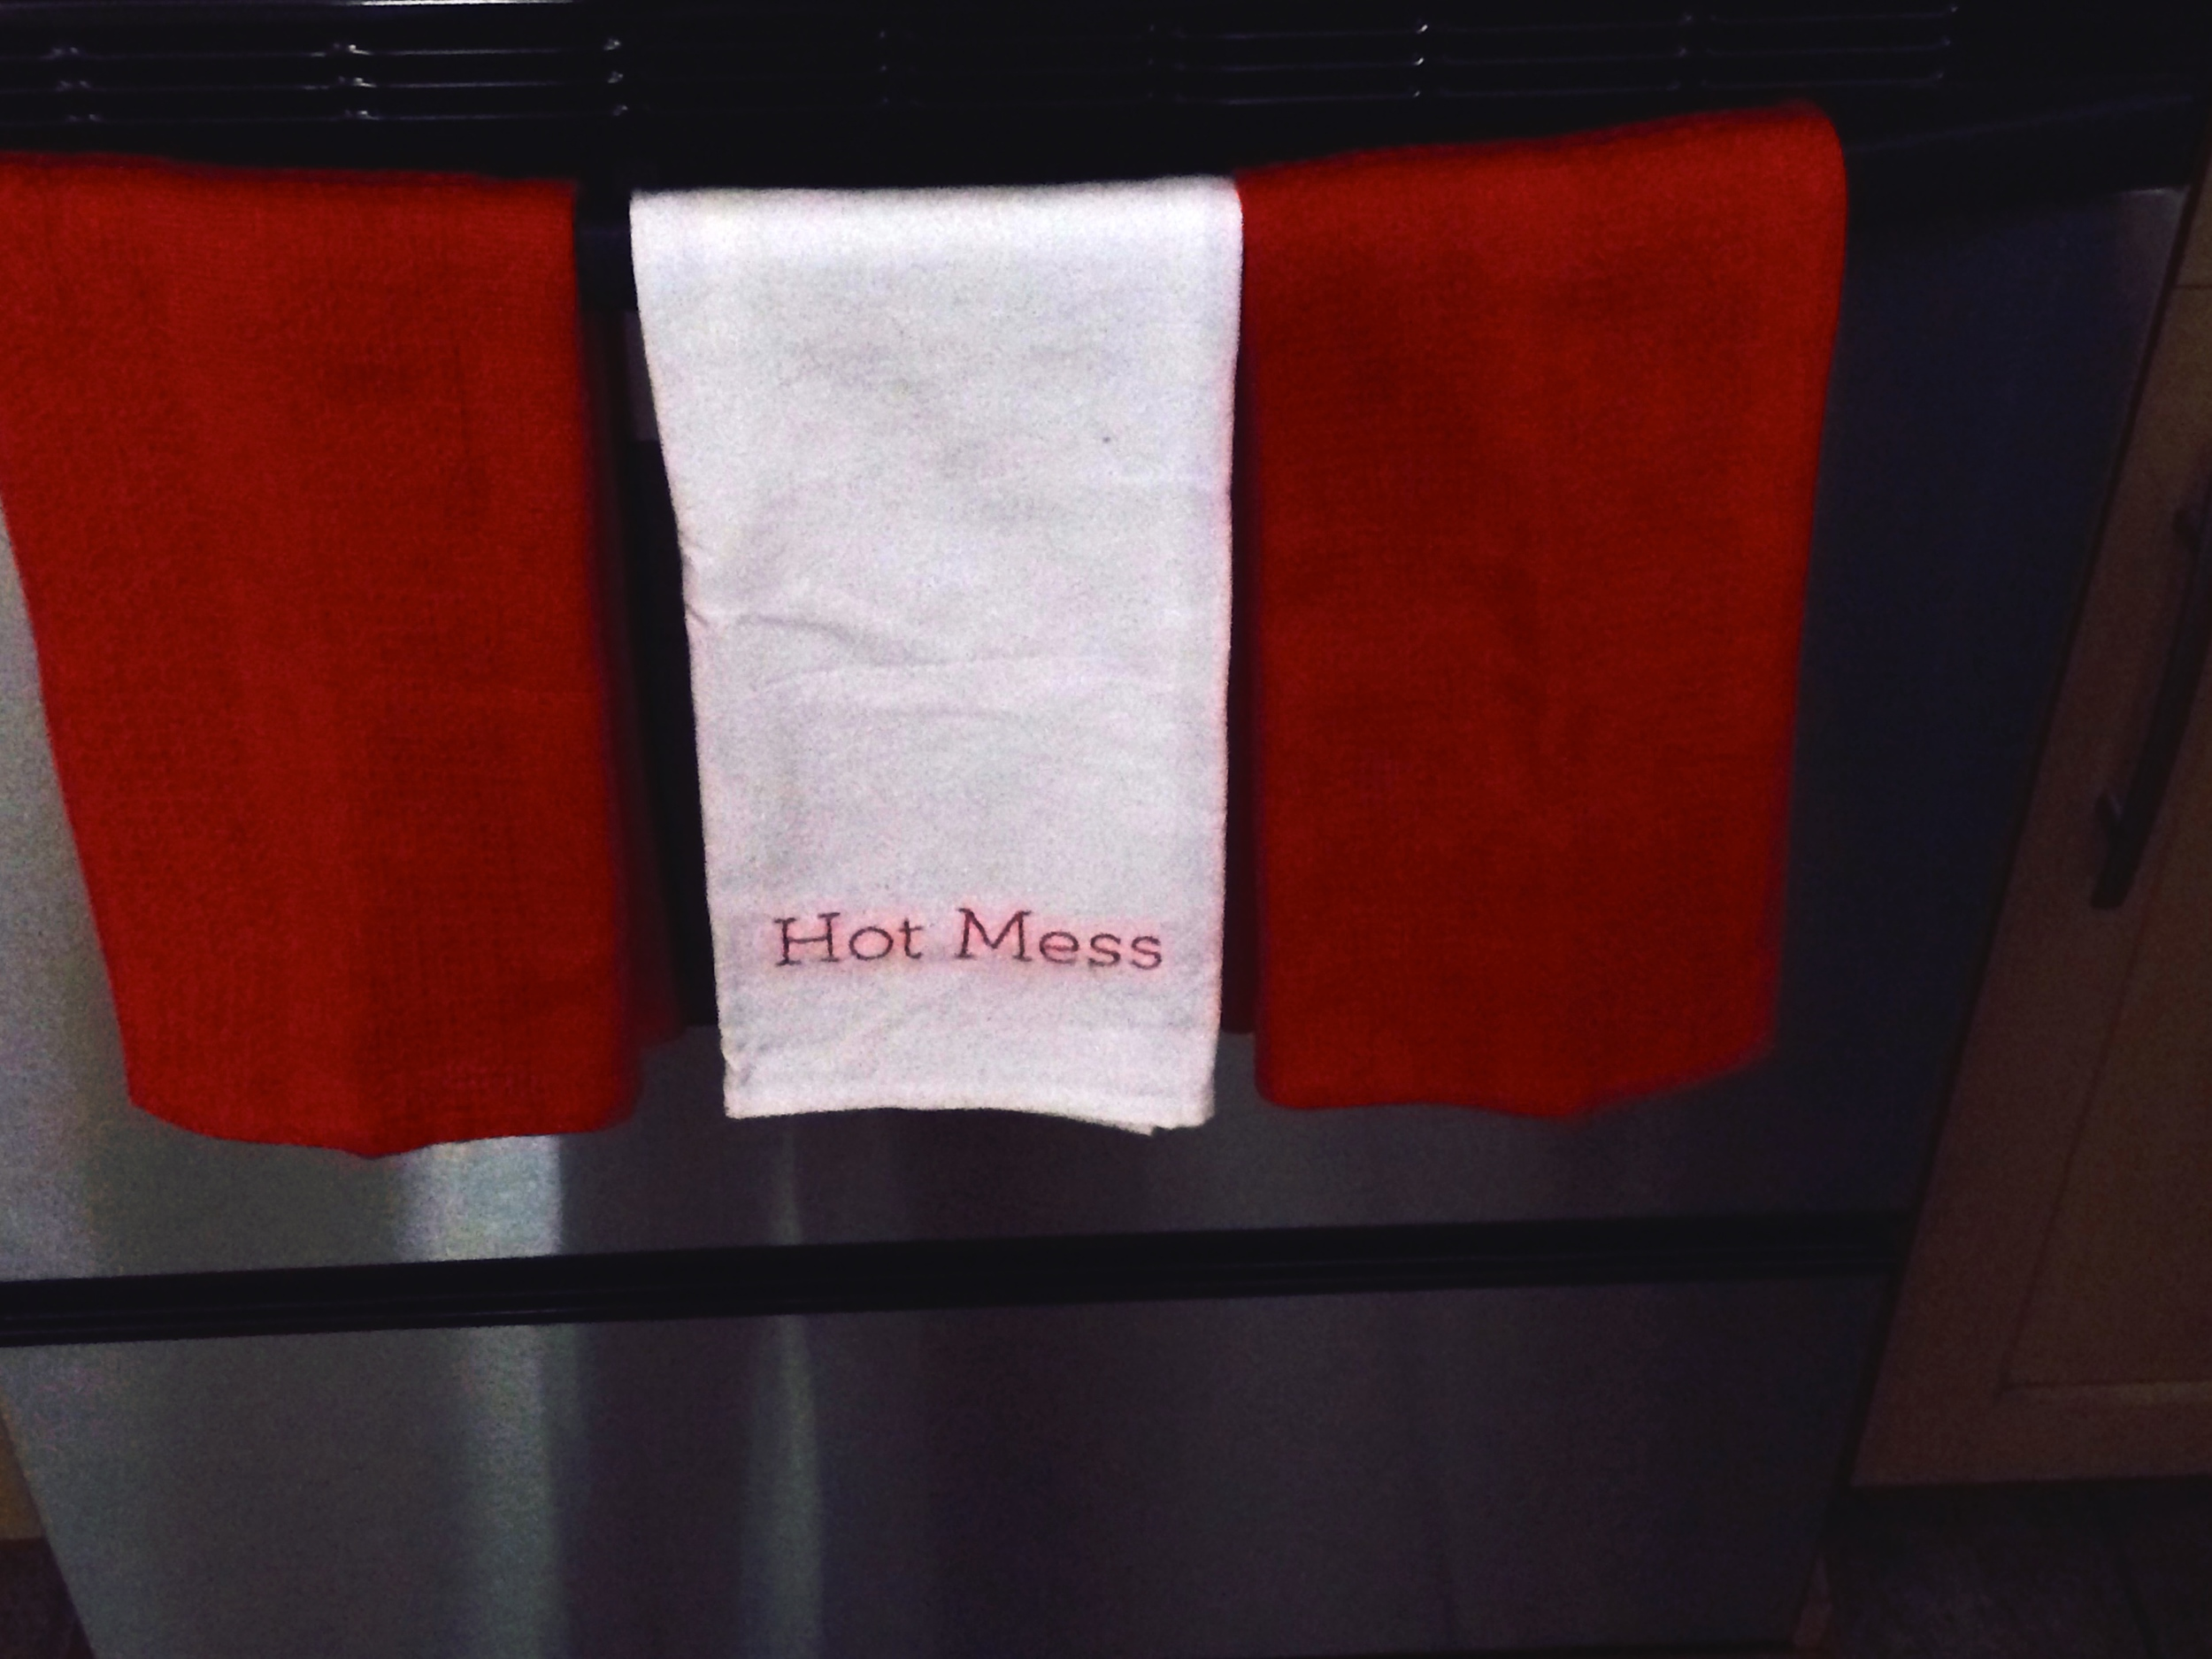 The Hot Mess kitchen towel that was inspired by Coco's Whore plate.